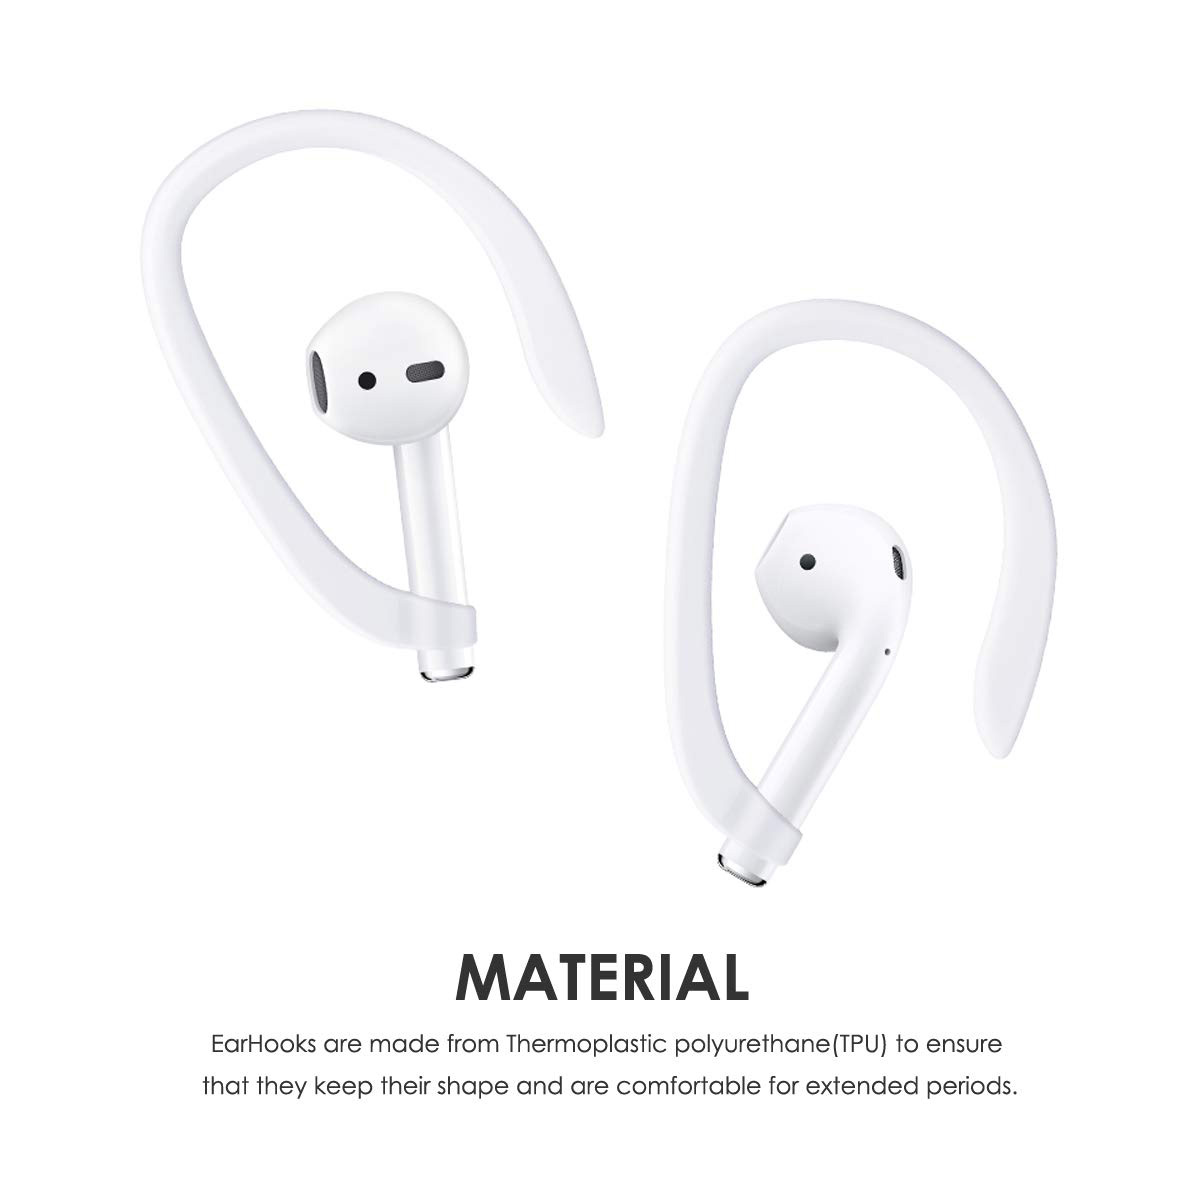 Wholesale Airpods Earhook For Apple Airpods Great For